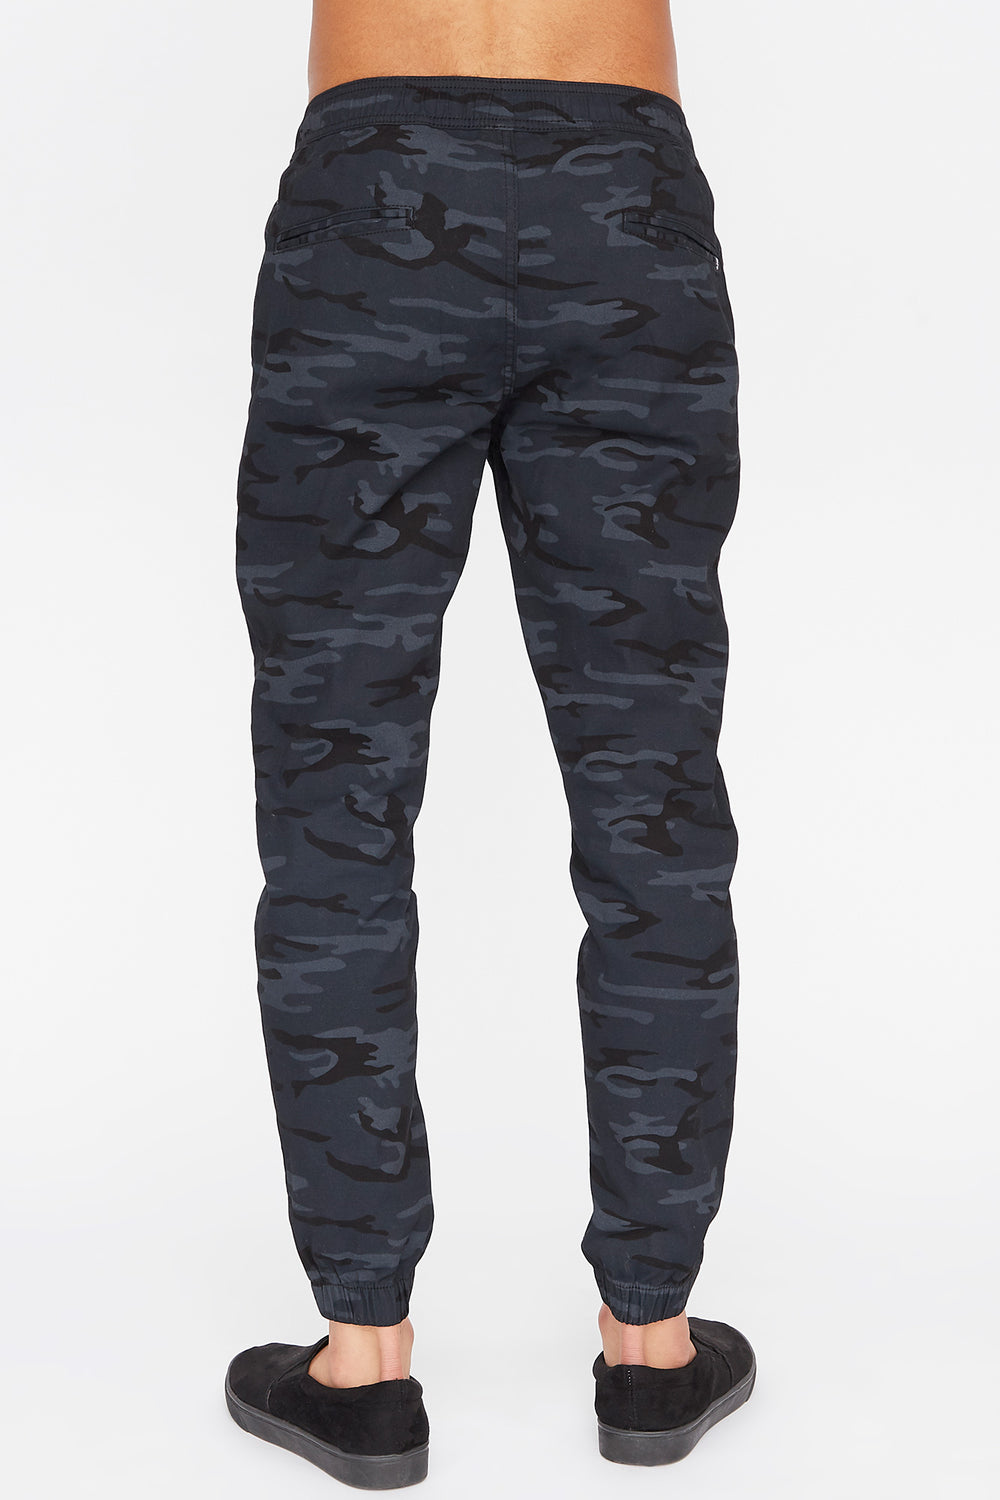 West49 Mens Twill Camo Jogger Black with White